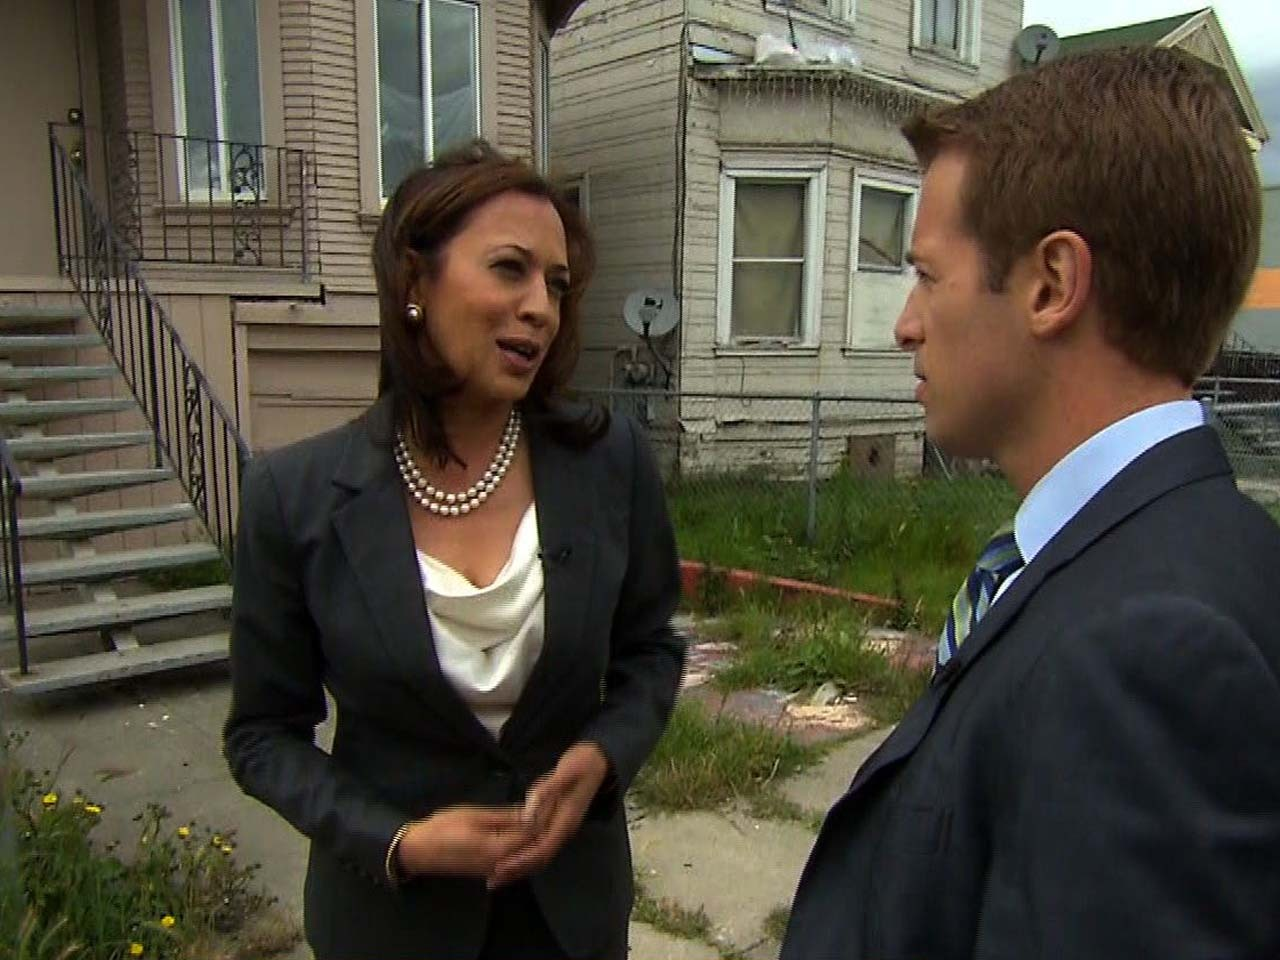 Calif Attorney General Kamala Harris Fights For Struggling Homeowners Cbs News